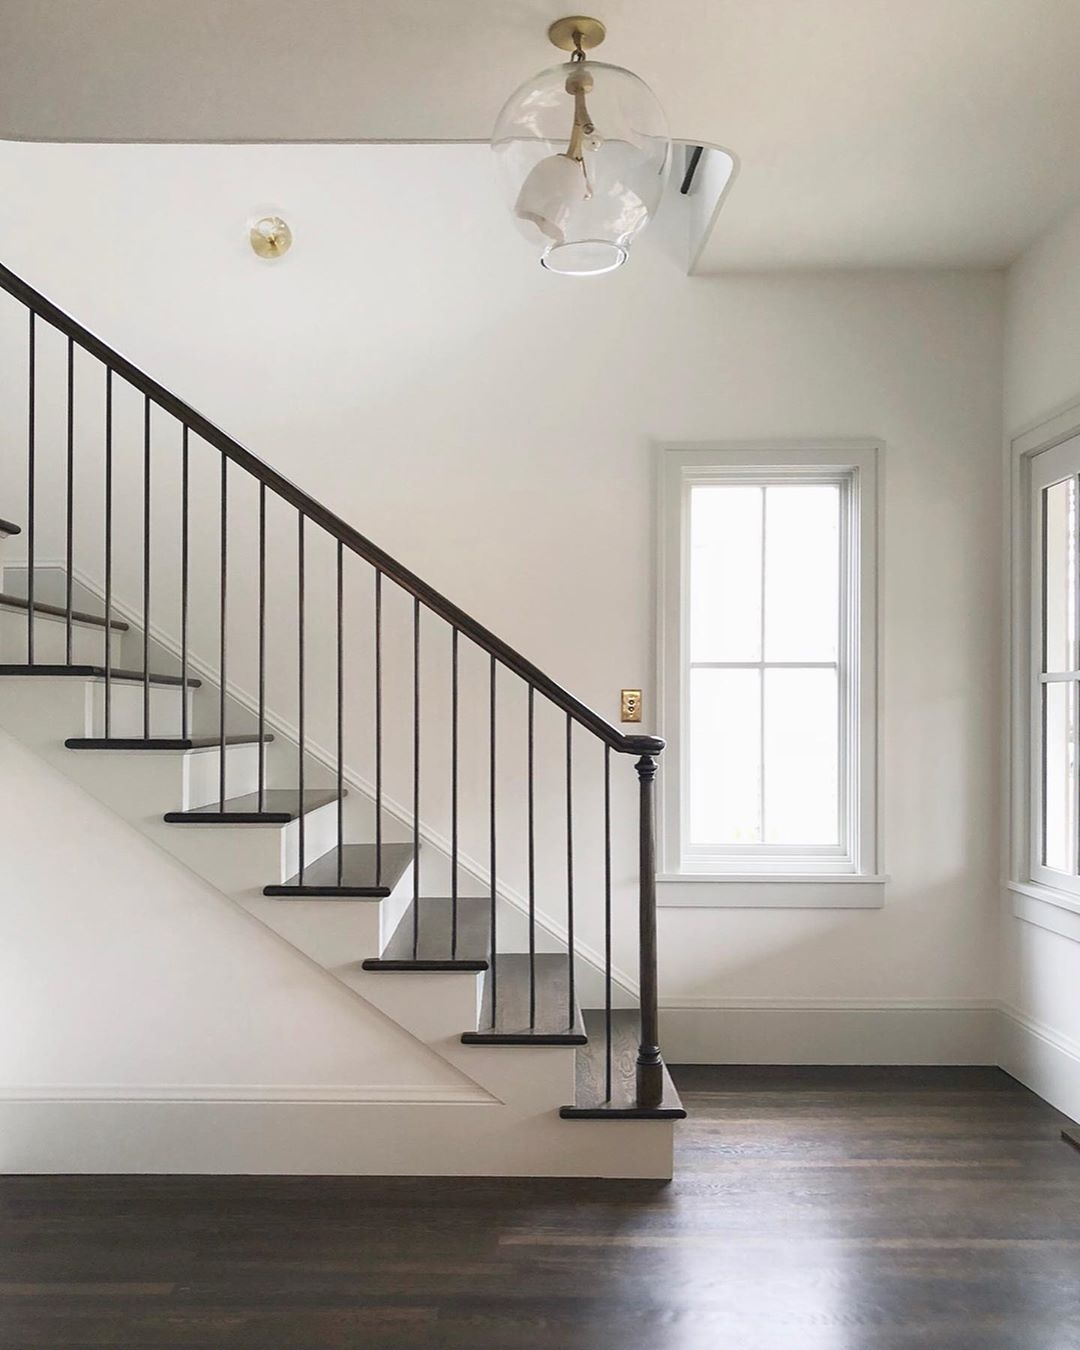 The Top Staircase Railing Inspiration Photos We Re Using To Design   Top Of Stairs Banister   Indoor   Rail   Barn Wood   Residential   Different Color